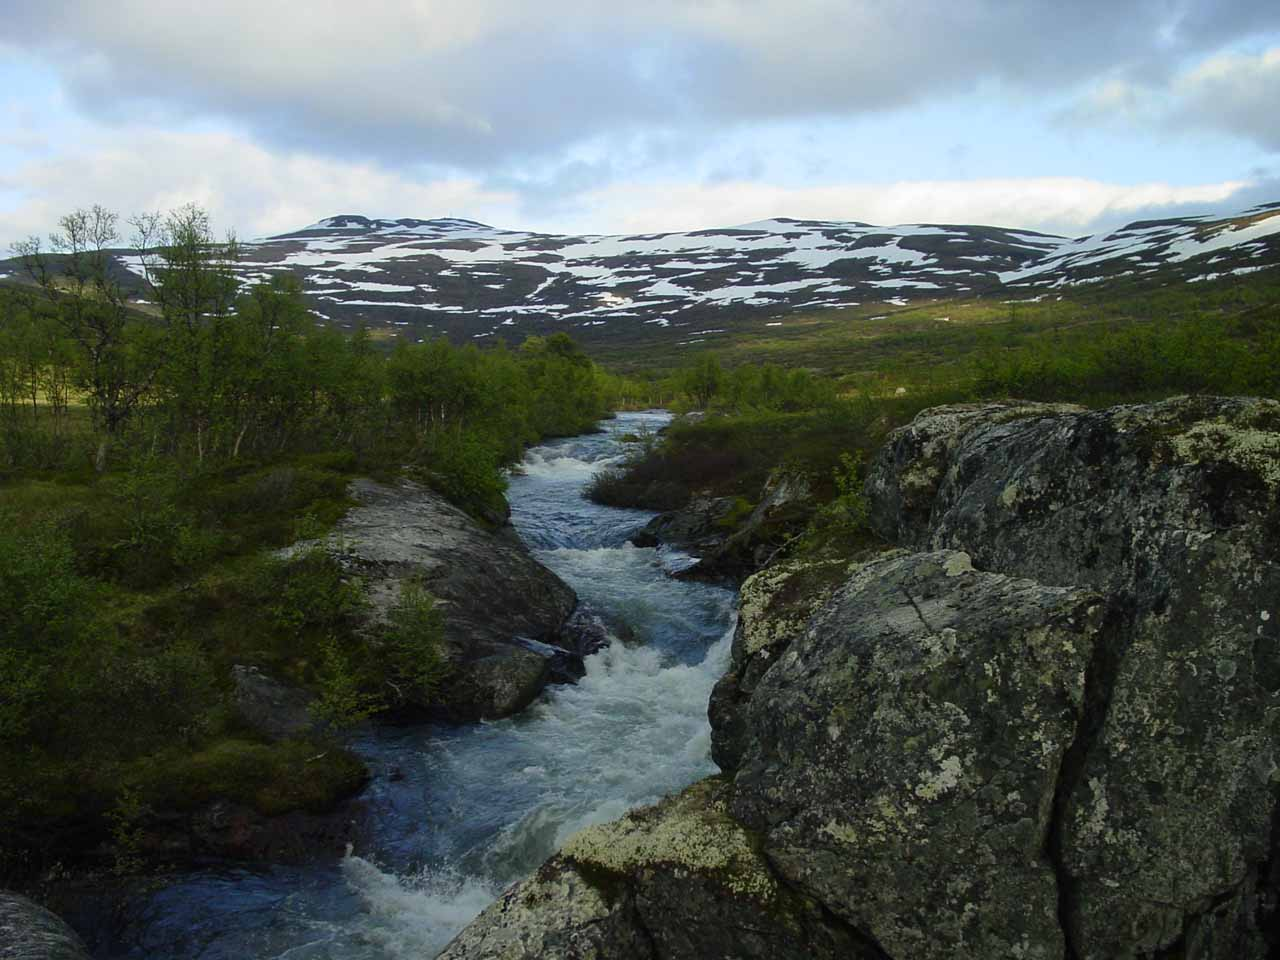 Looking further up some creek towards the moorish highlands of the Hardanger Plateau